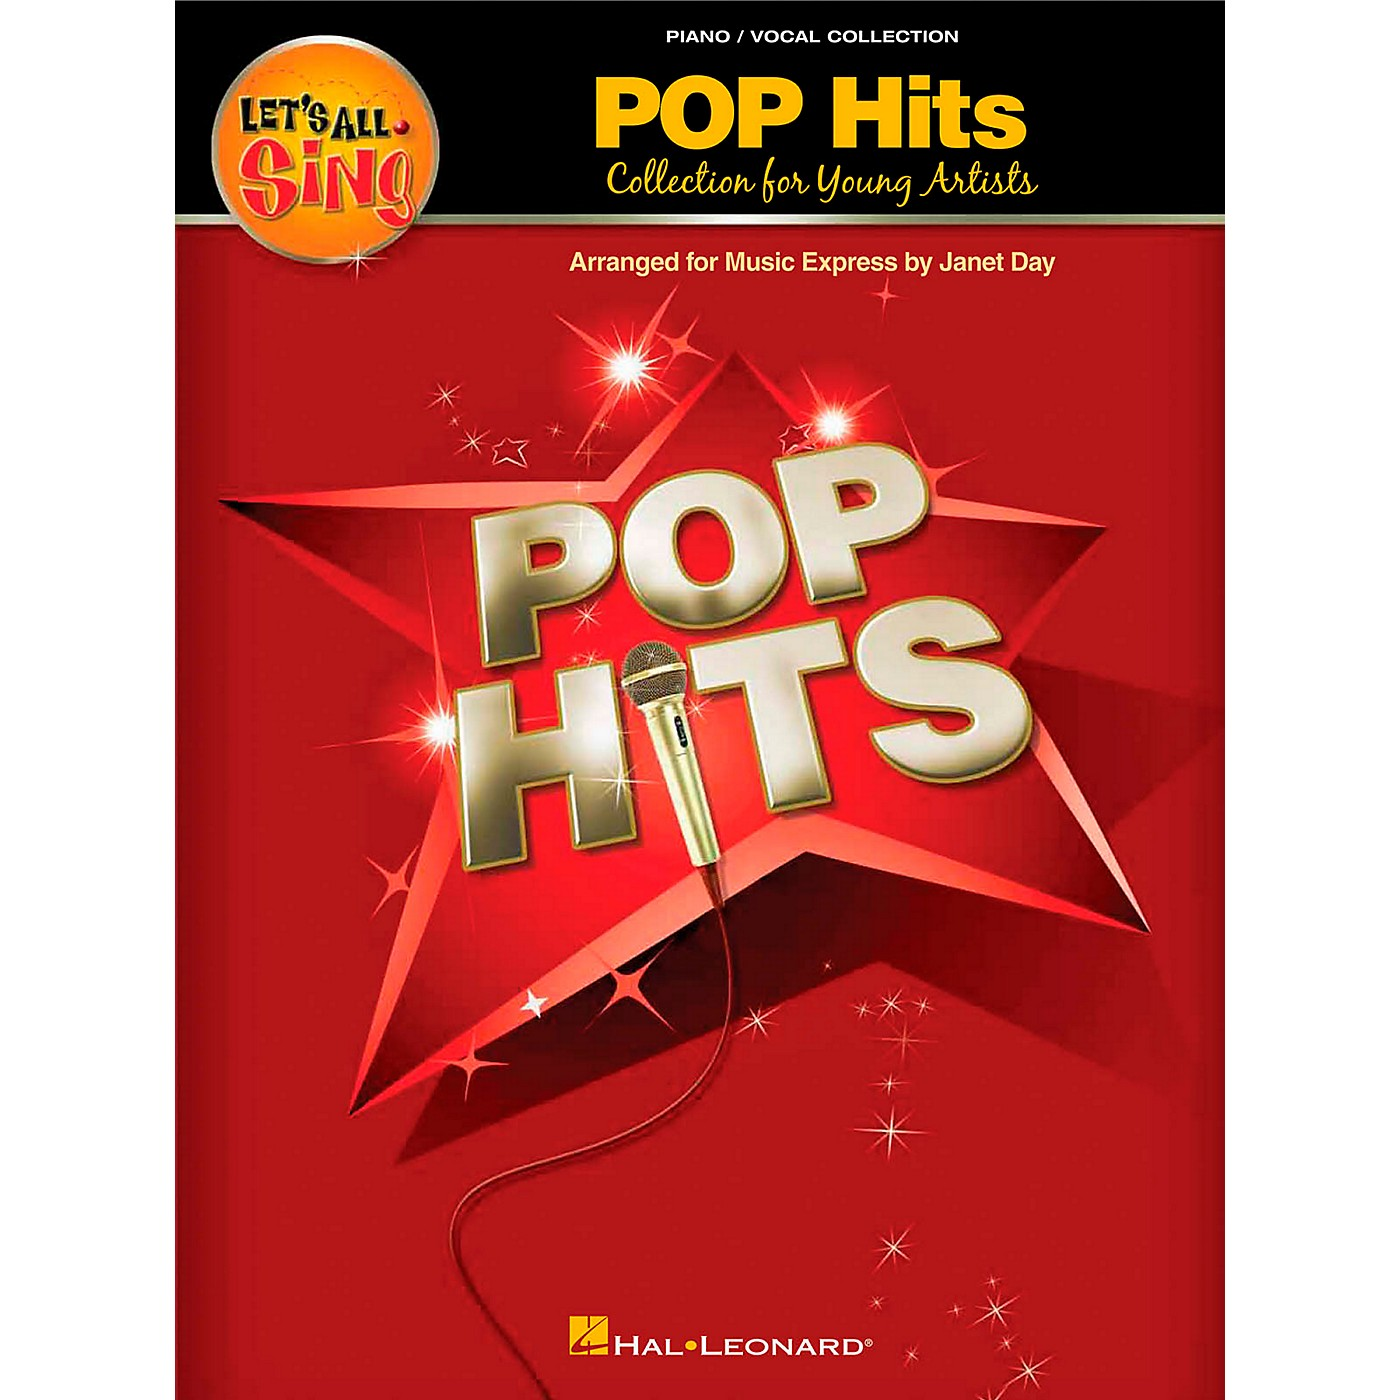 Hal Leonard Let's All Sing Pop Hits - Collection for Young Voices Piano Vocal Collection thumbnail